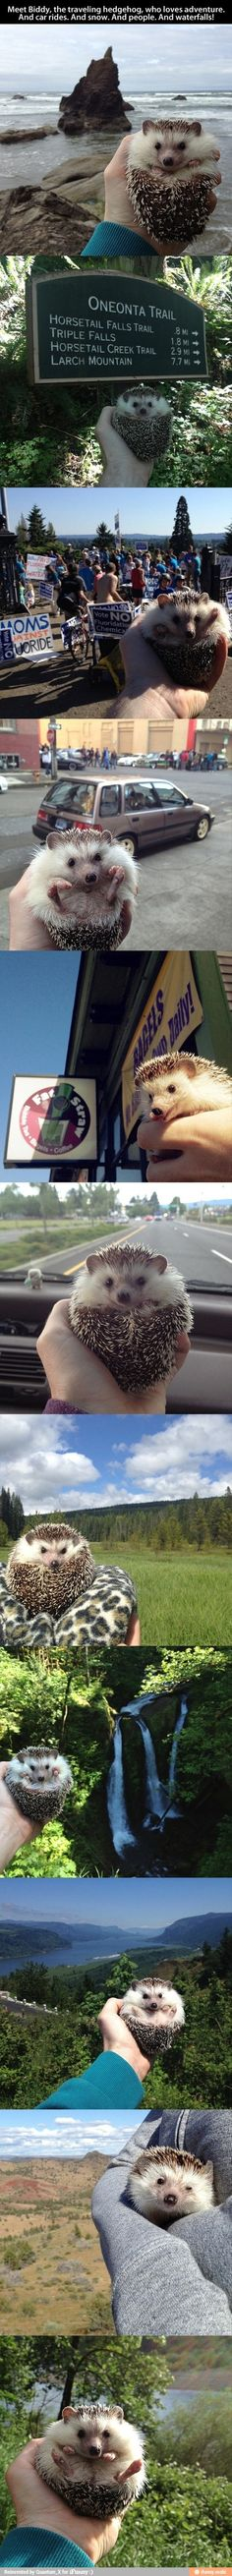 I want a hedgehog to take with me on my travels too!